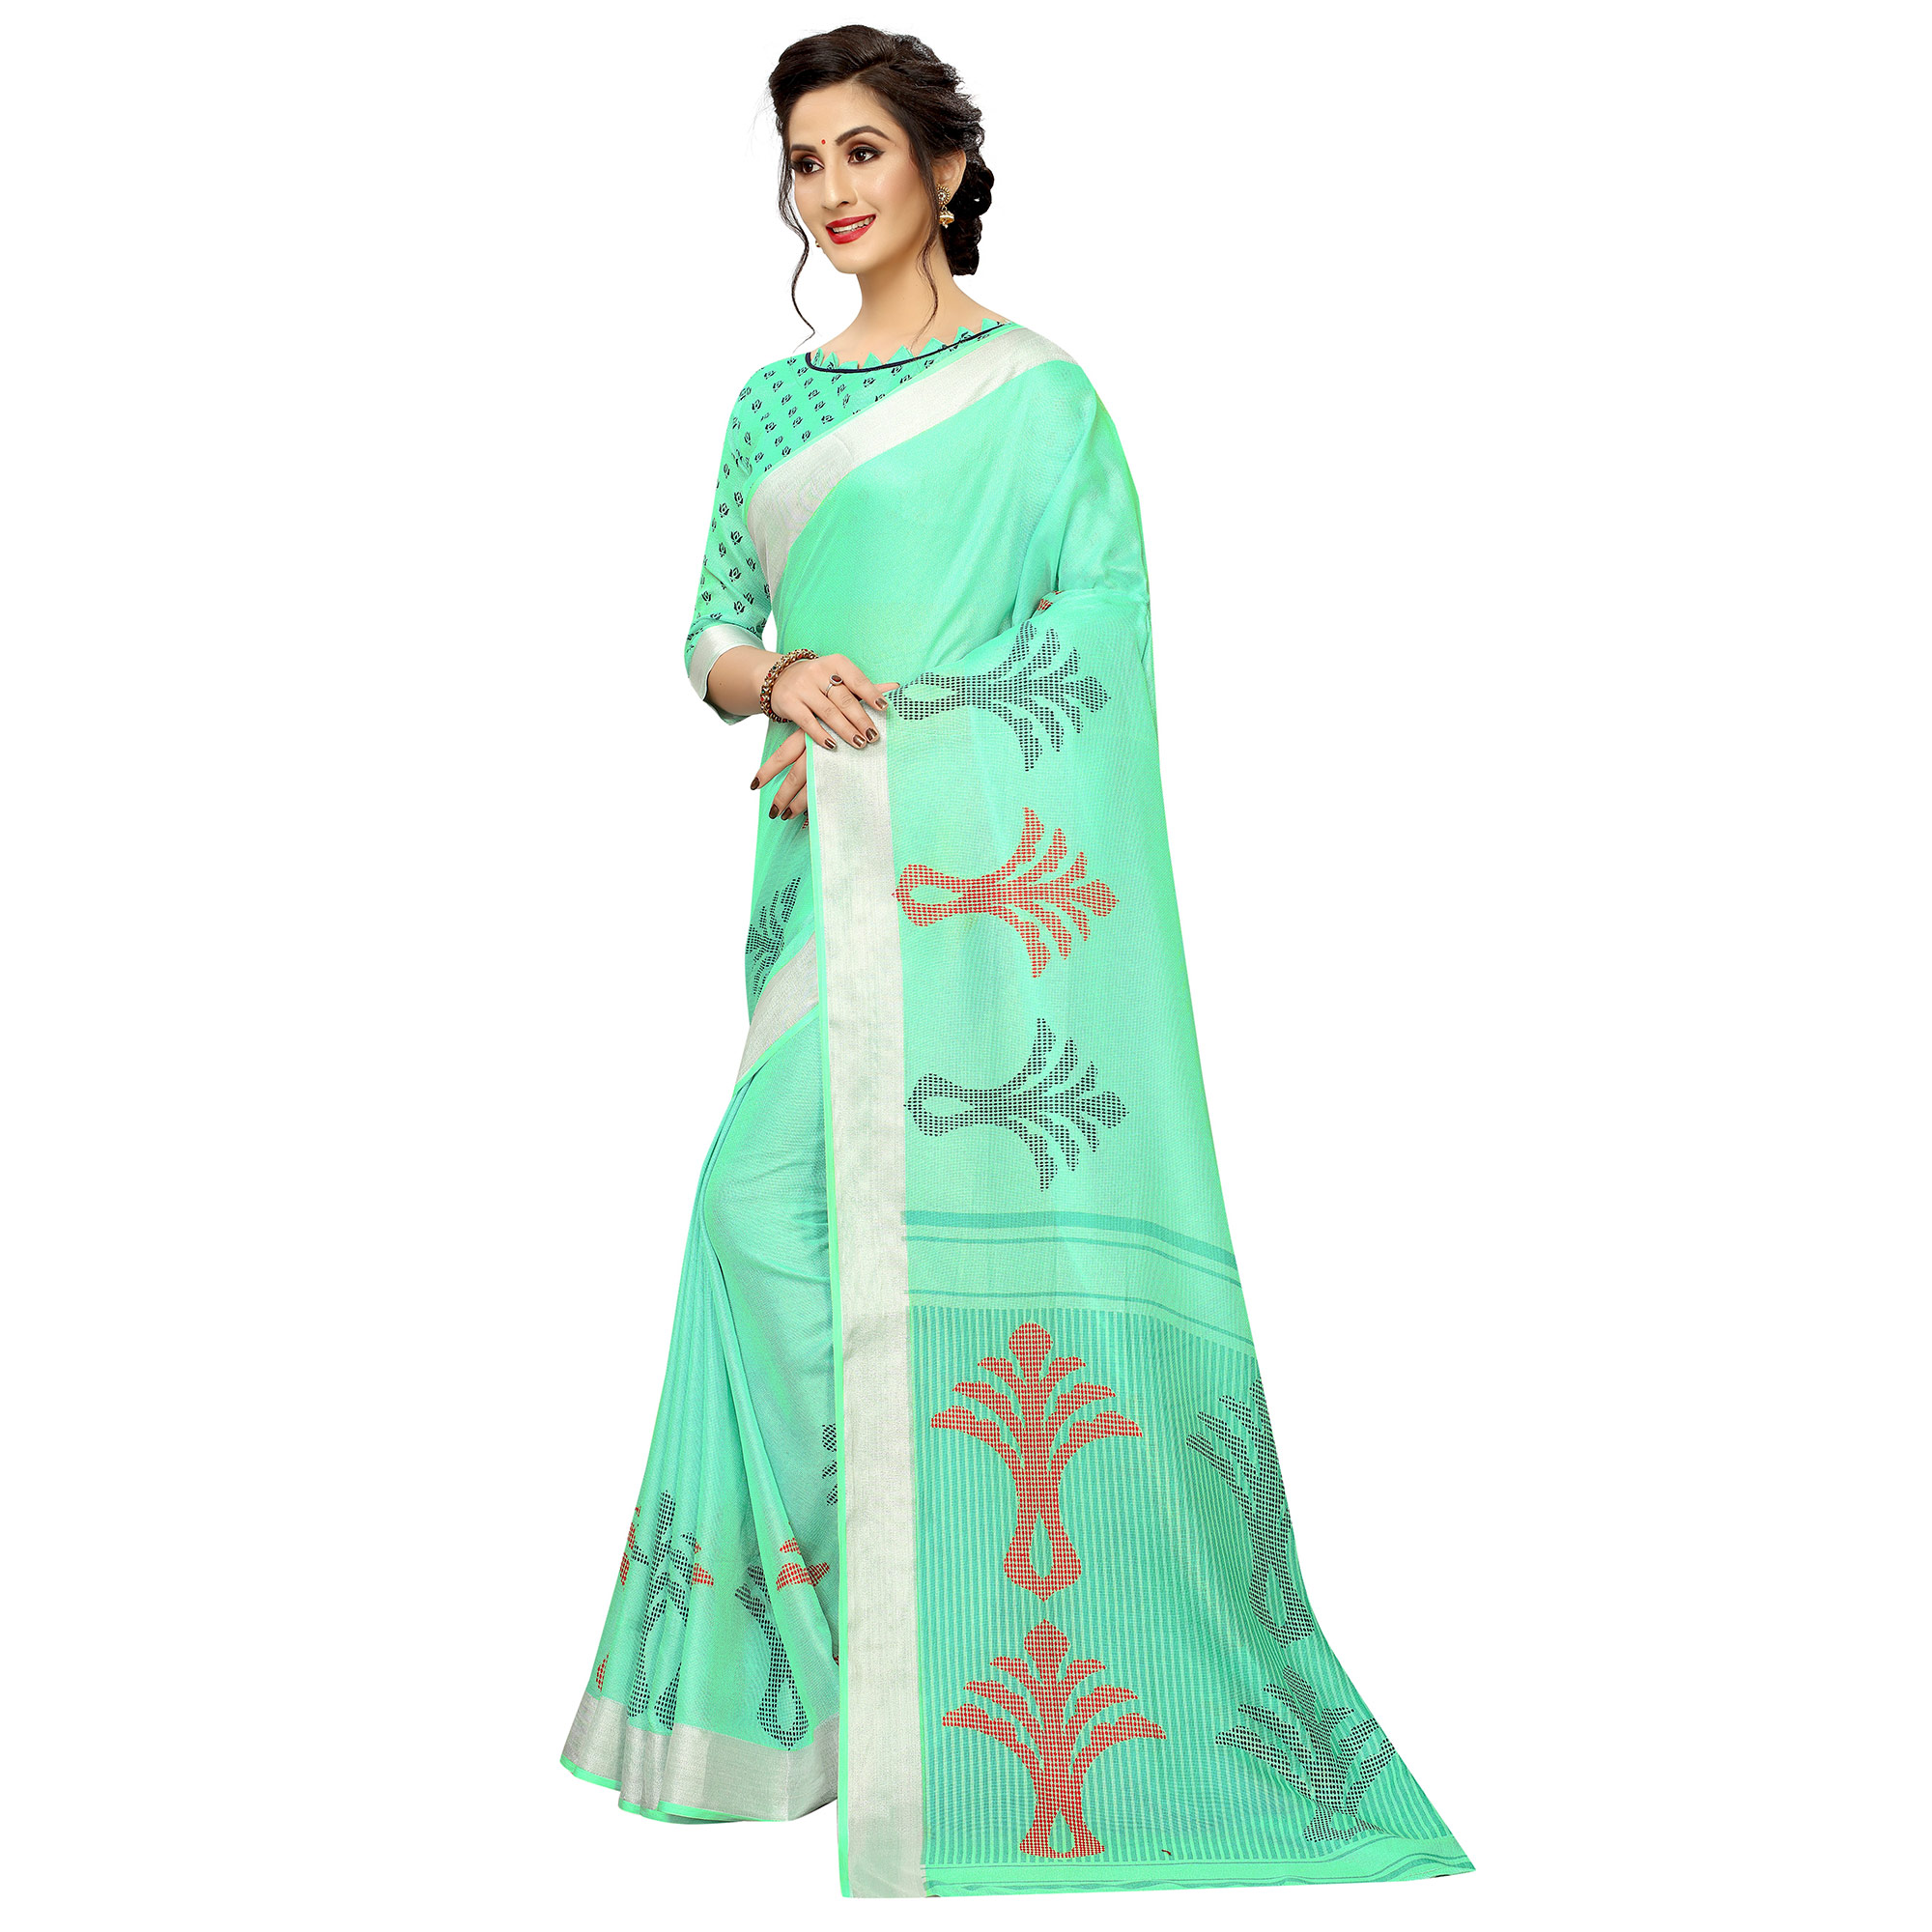 Delightful Turquoise Green Colored Casual Wear Printed Linen Saree